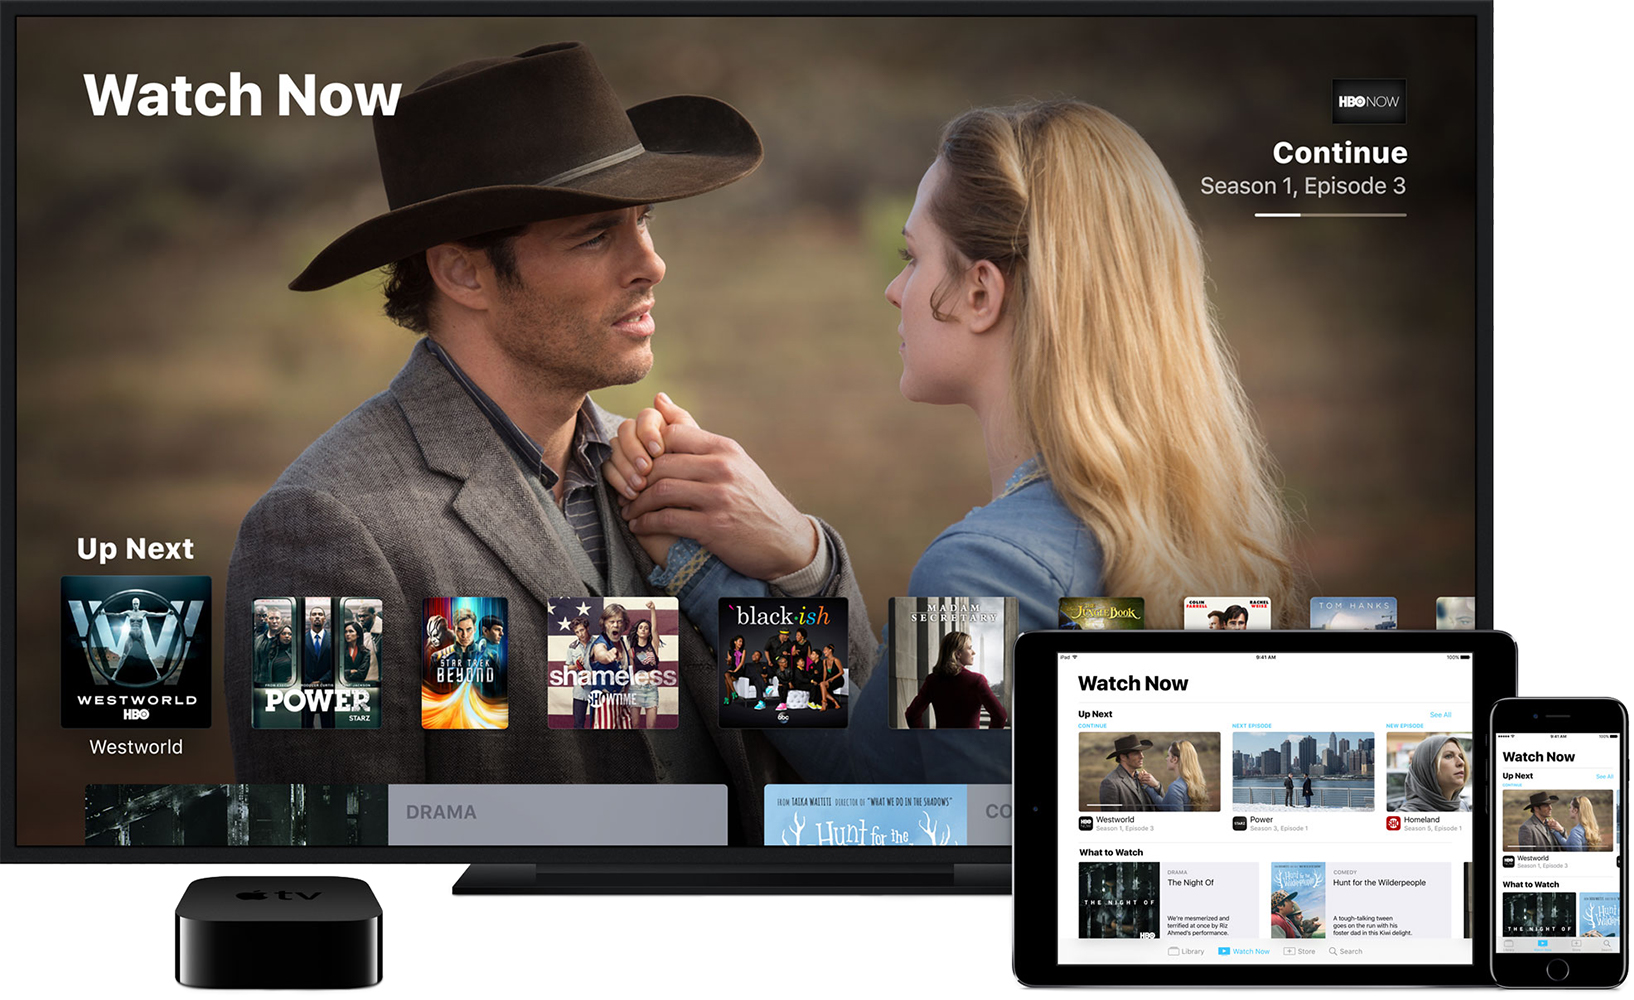 The TV app on Apple TV (4th generation), iPhone, and iPad